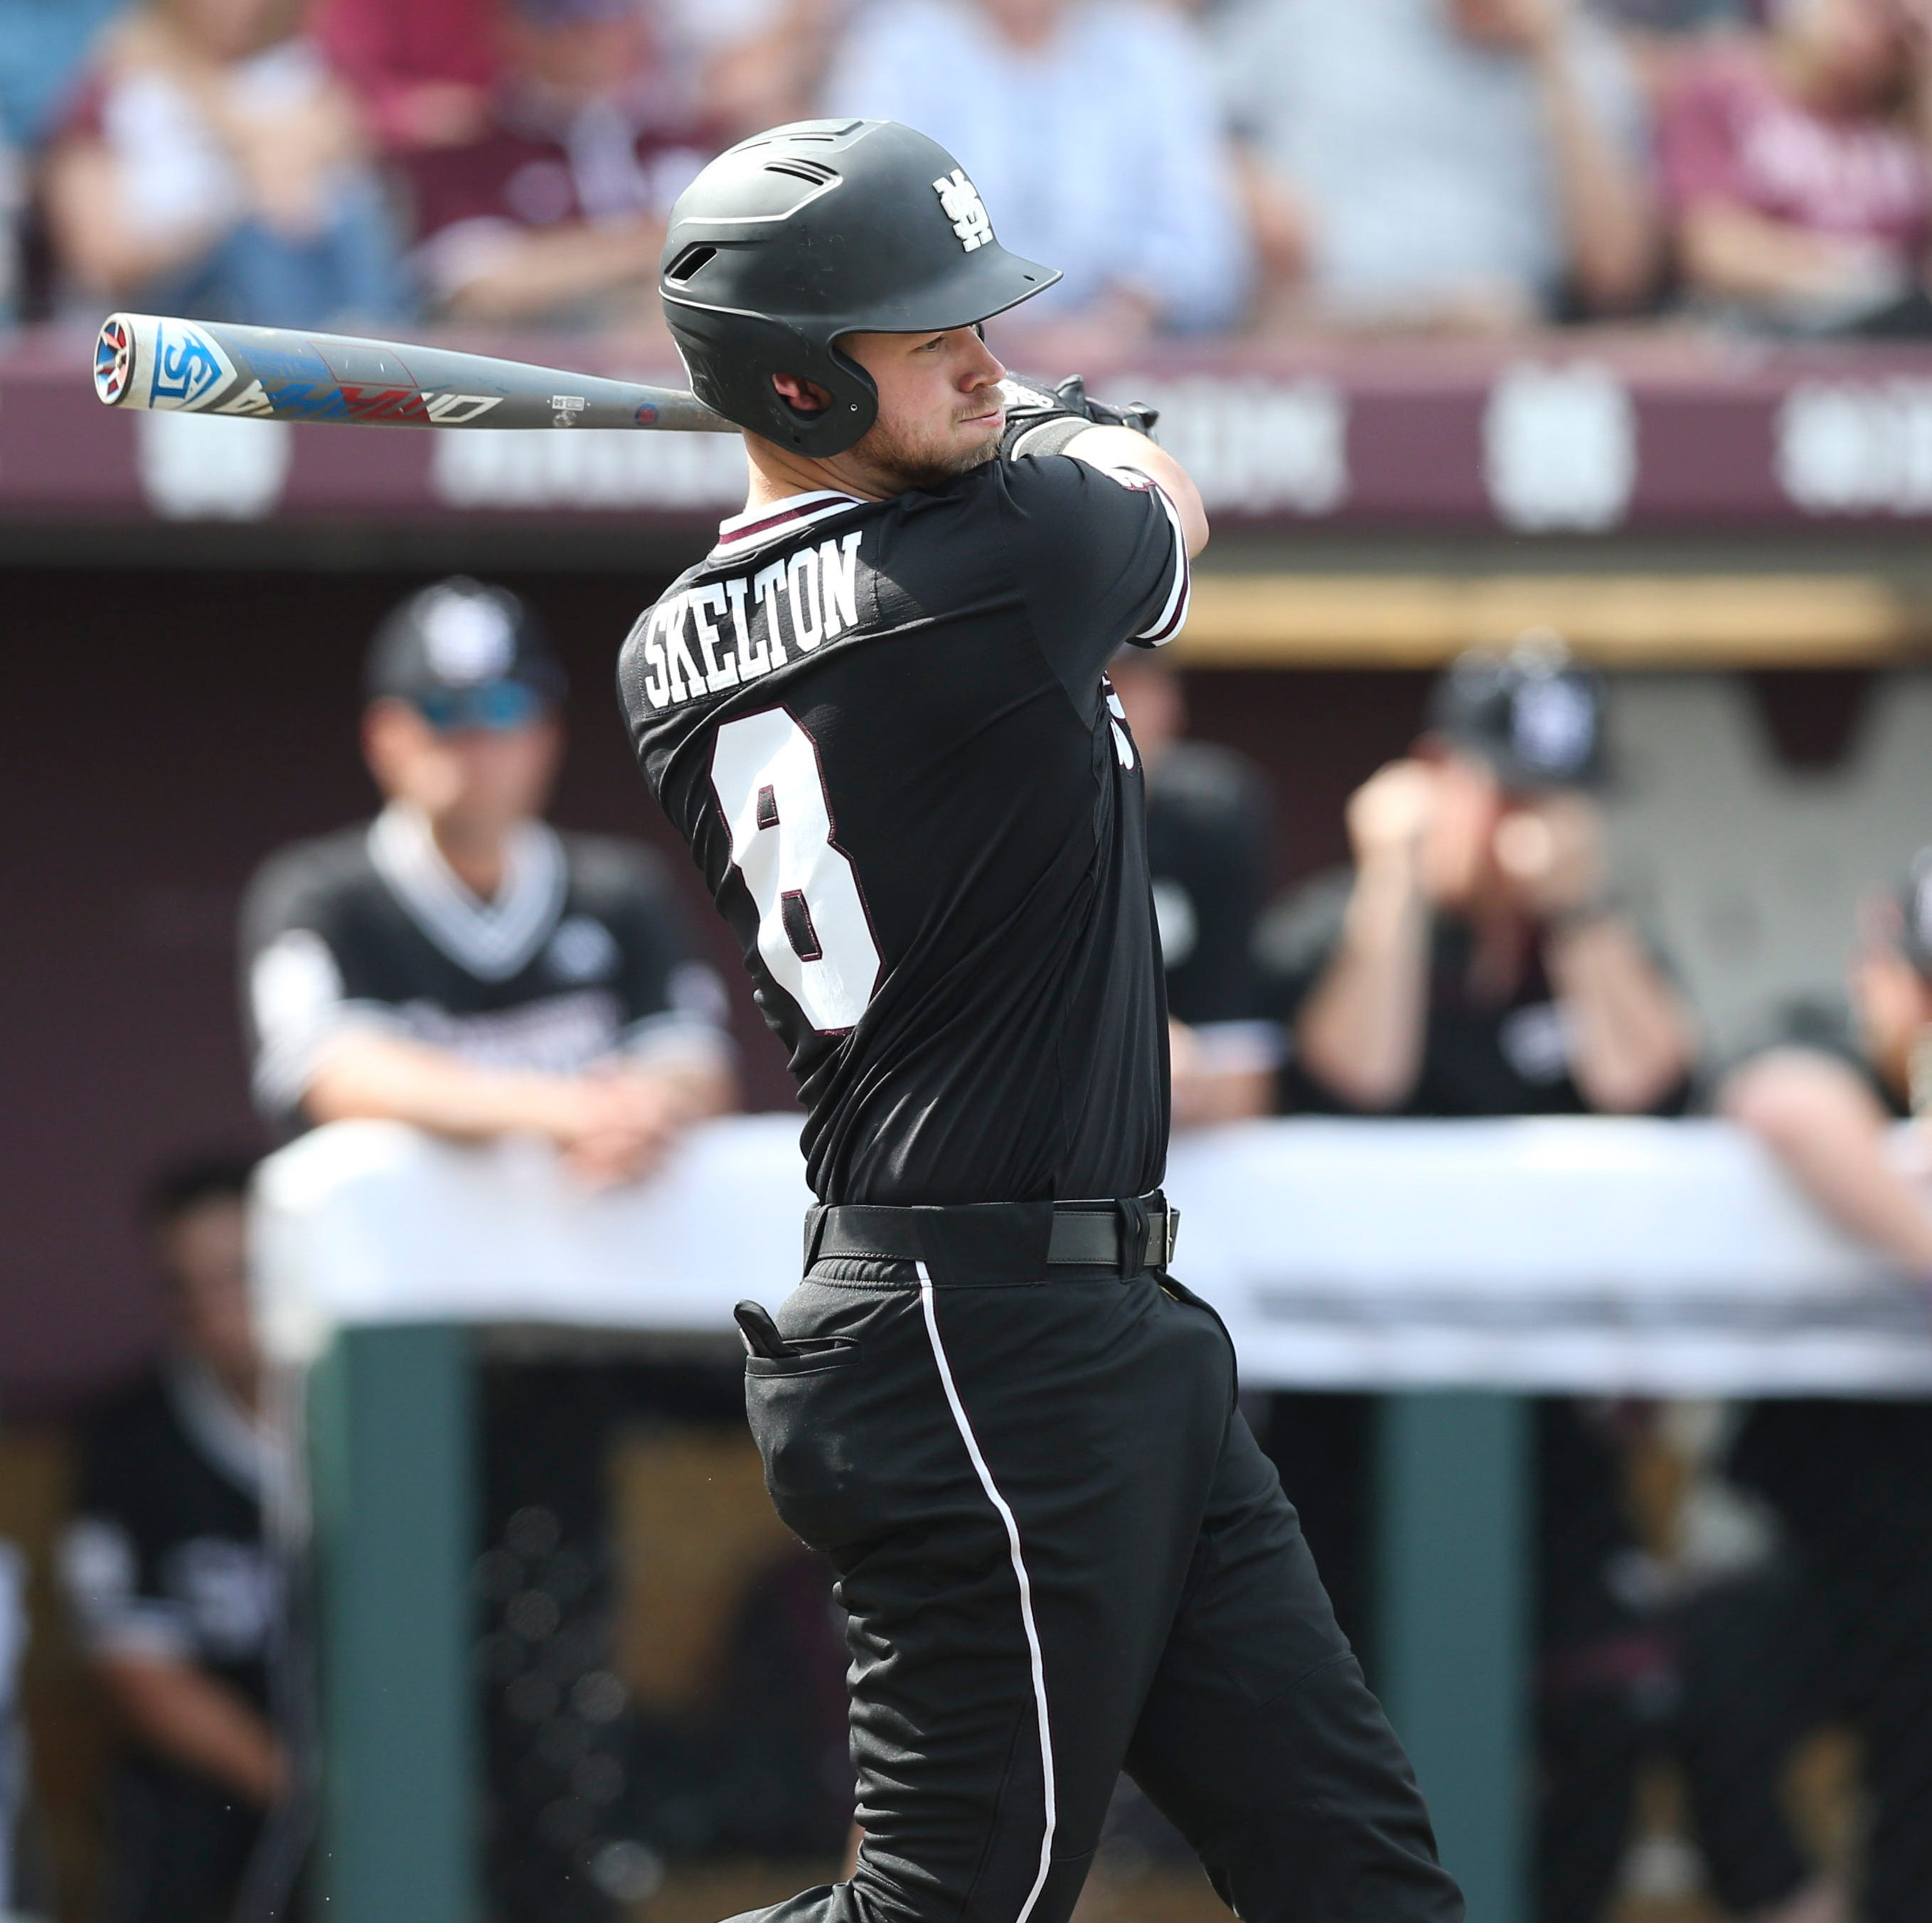 Mississippi State baseball takes Sunday slugfest over Auburn